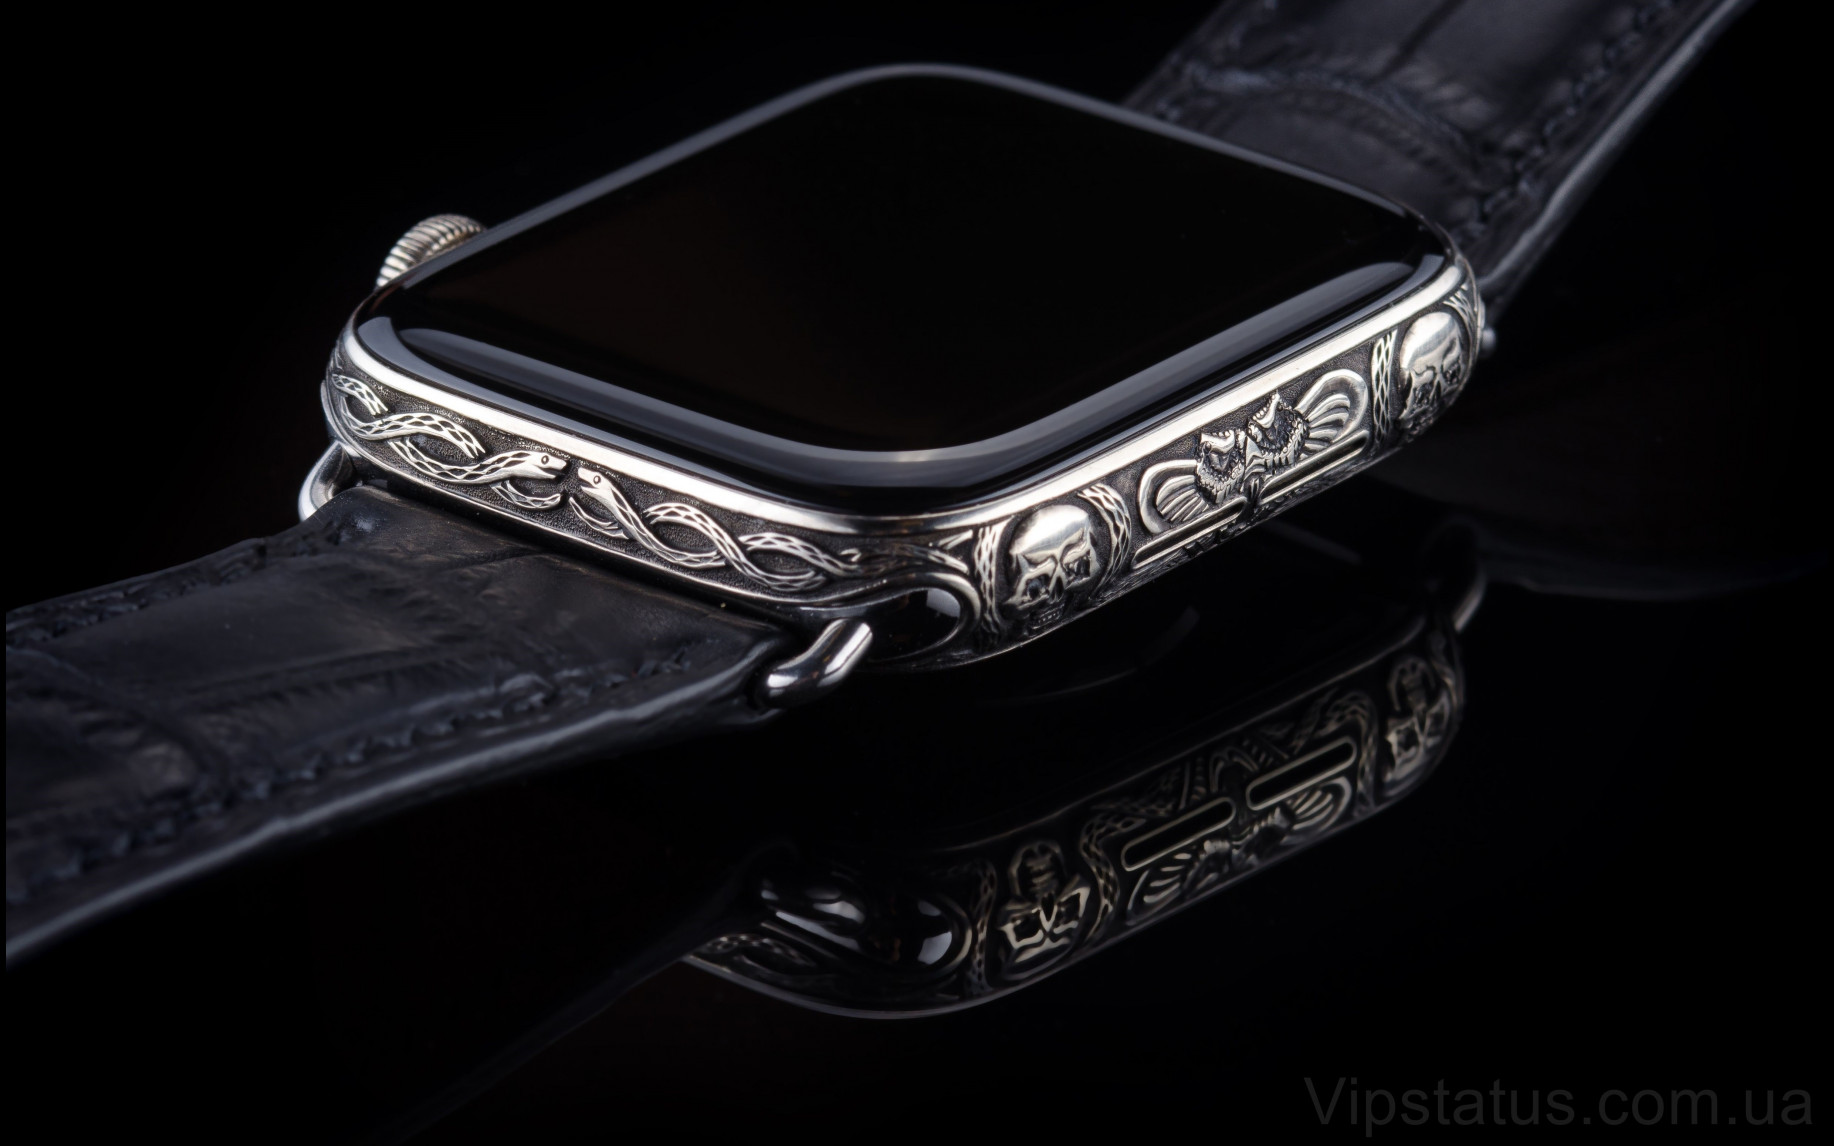 Элитный Skull 666 Platinum Apple Watch 5 Sapphire Skull 666 Platinum Apple Watch 5 Sapphire изображение 3